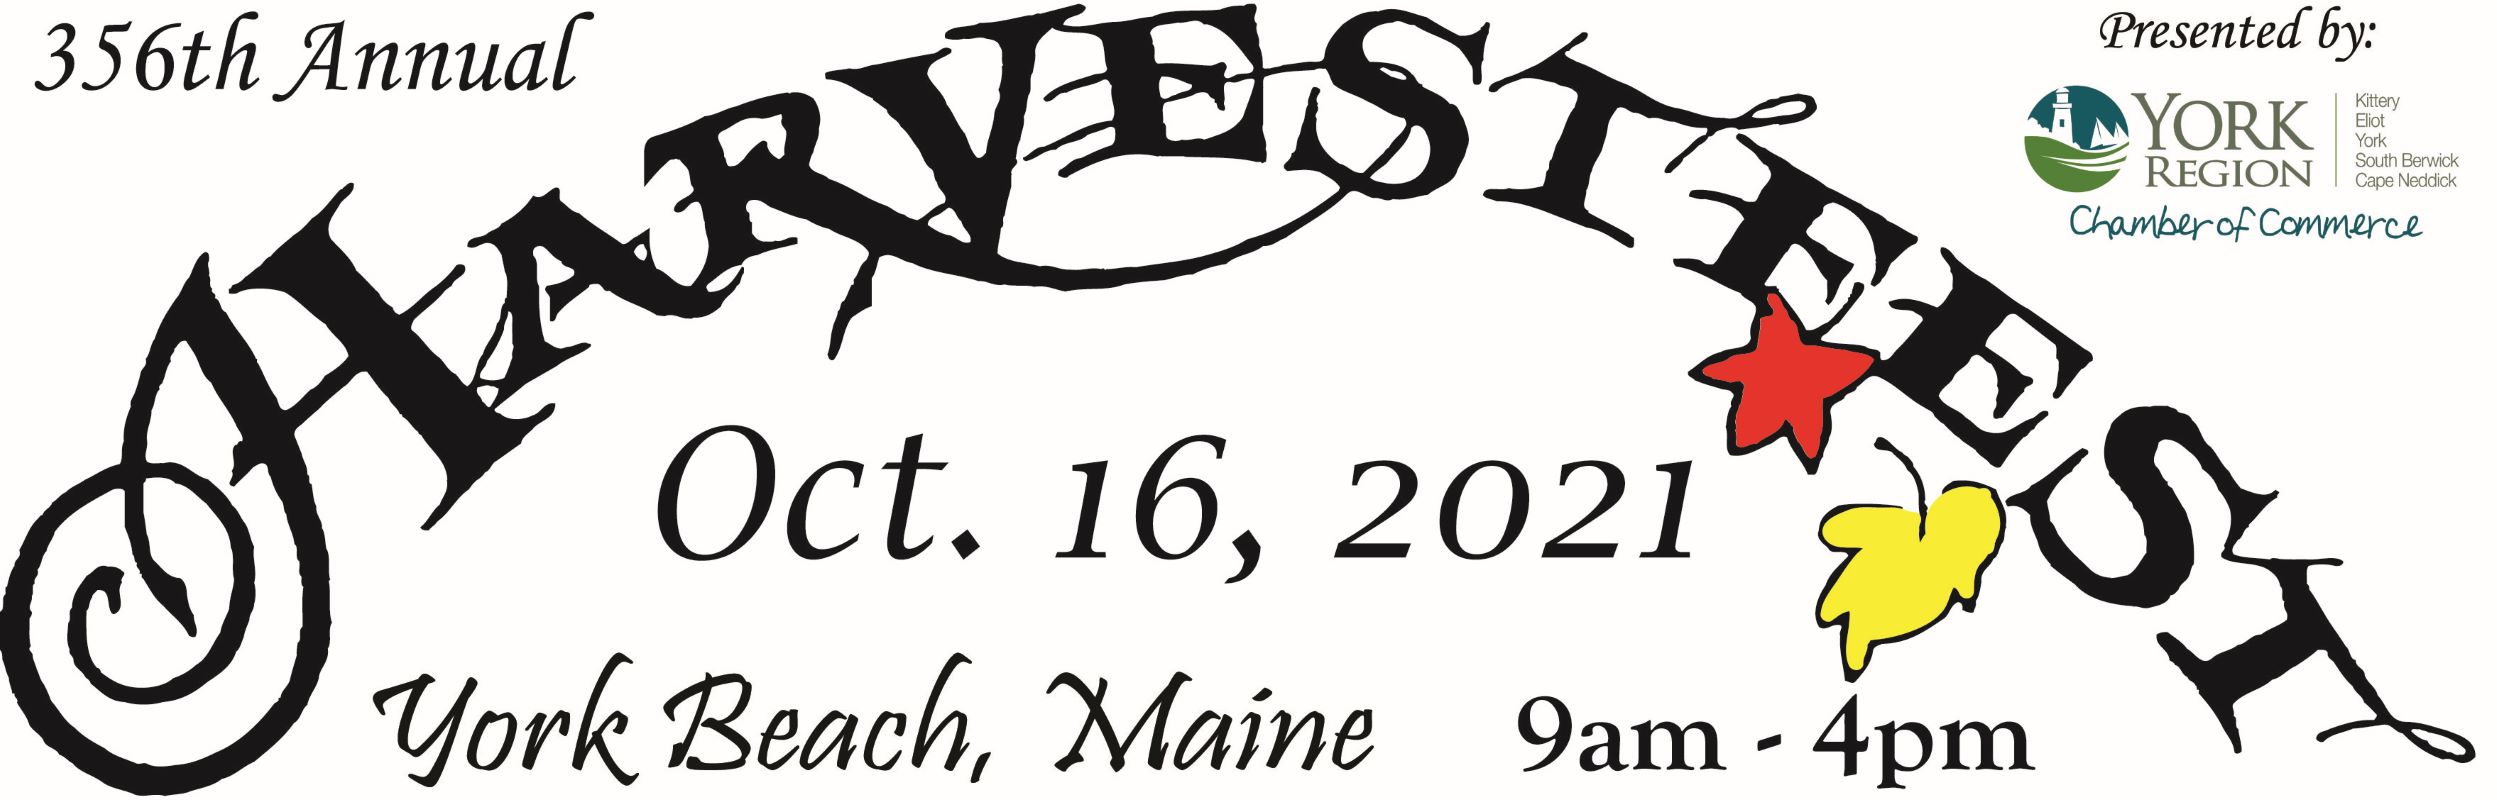 Harvesfest Header with color 2021a (002)